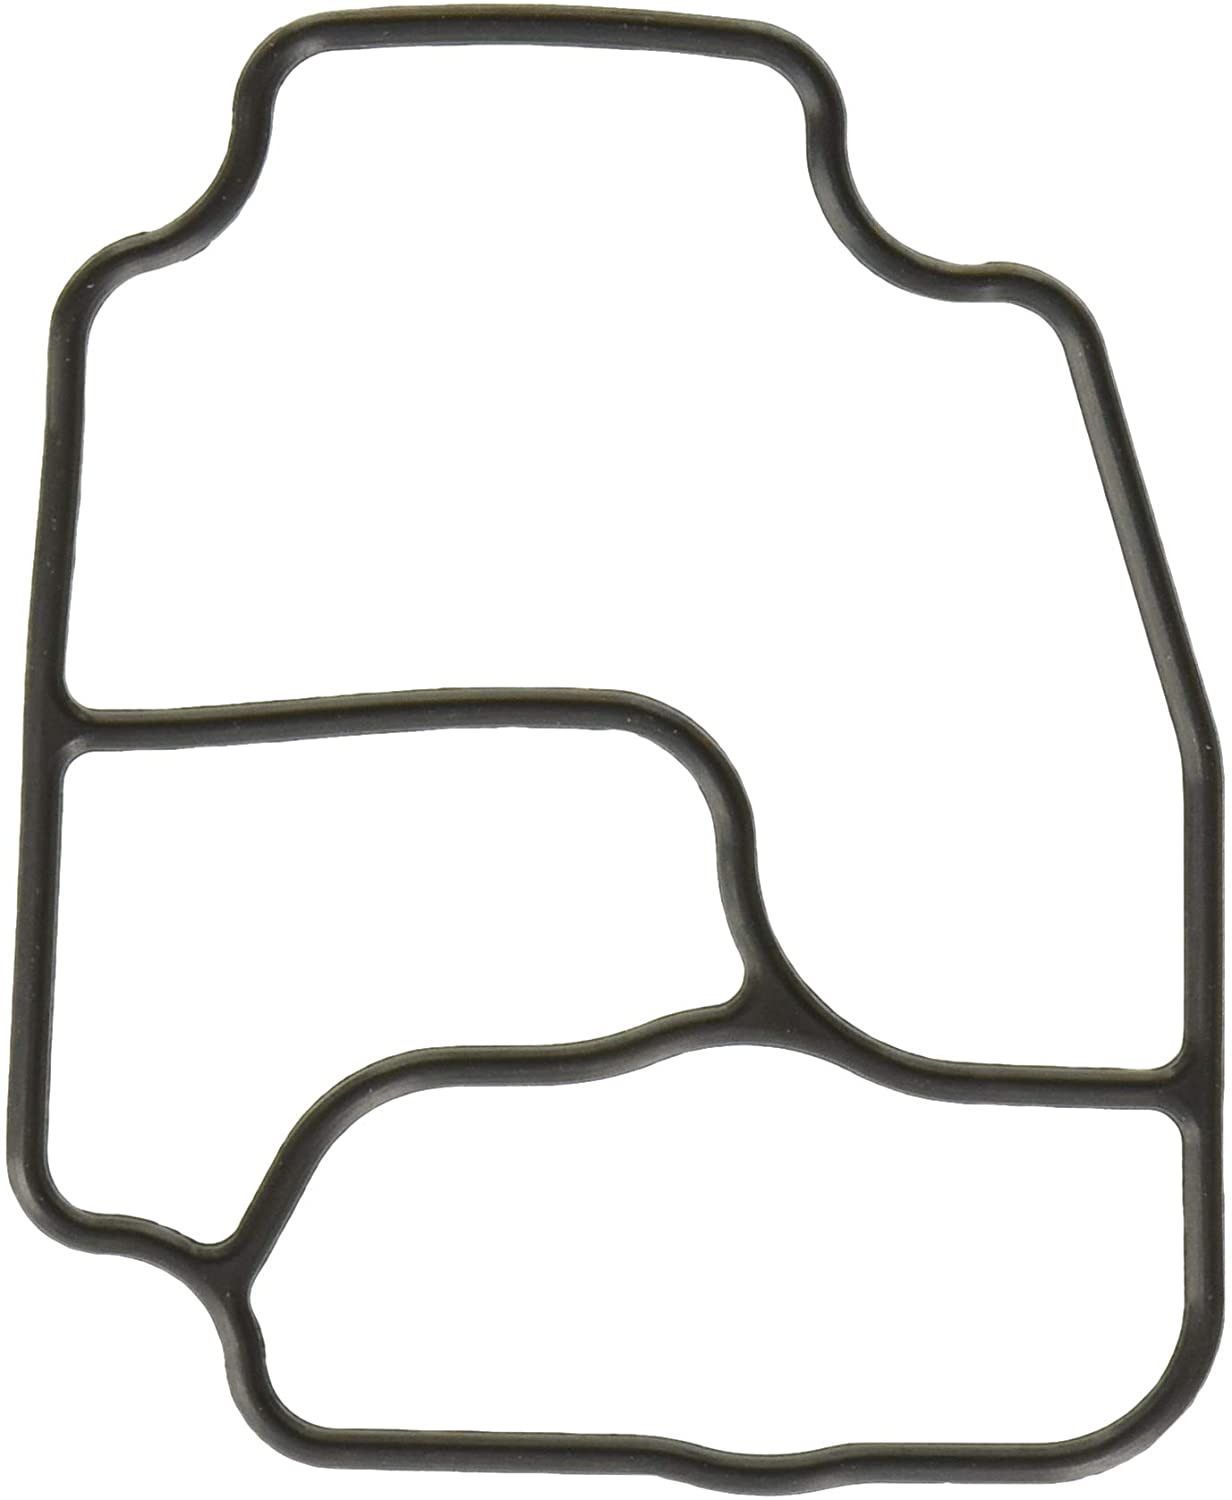 MAHLE B32350 Engine Oil Filter Adapter Gasket